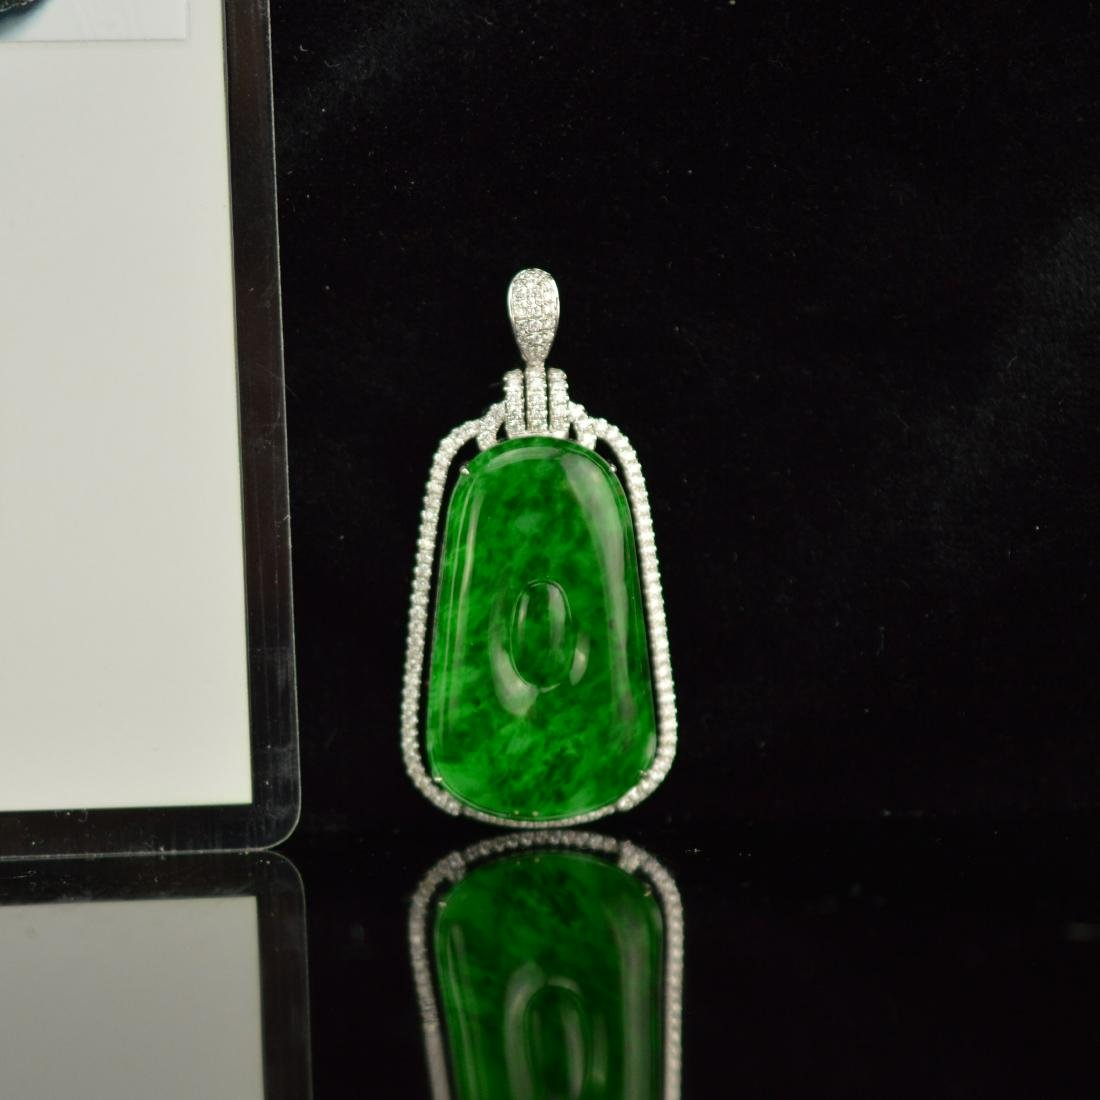 Natural Burma jadeite pendant with 18k white gold with